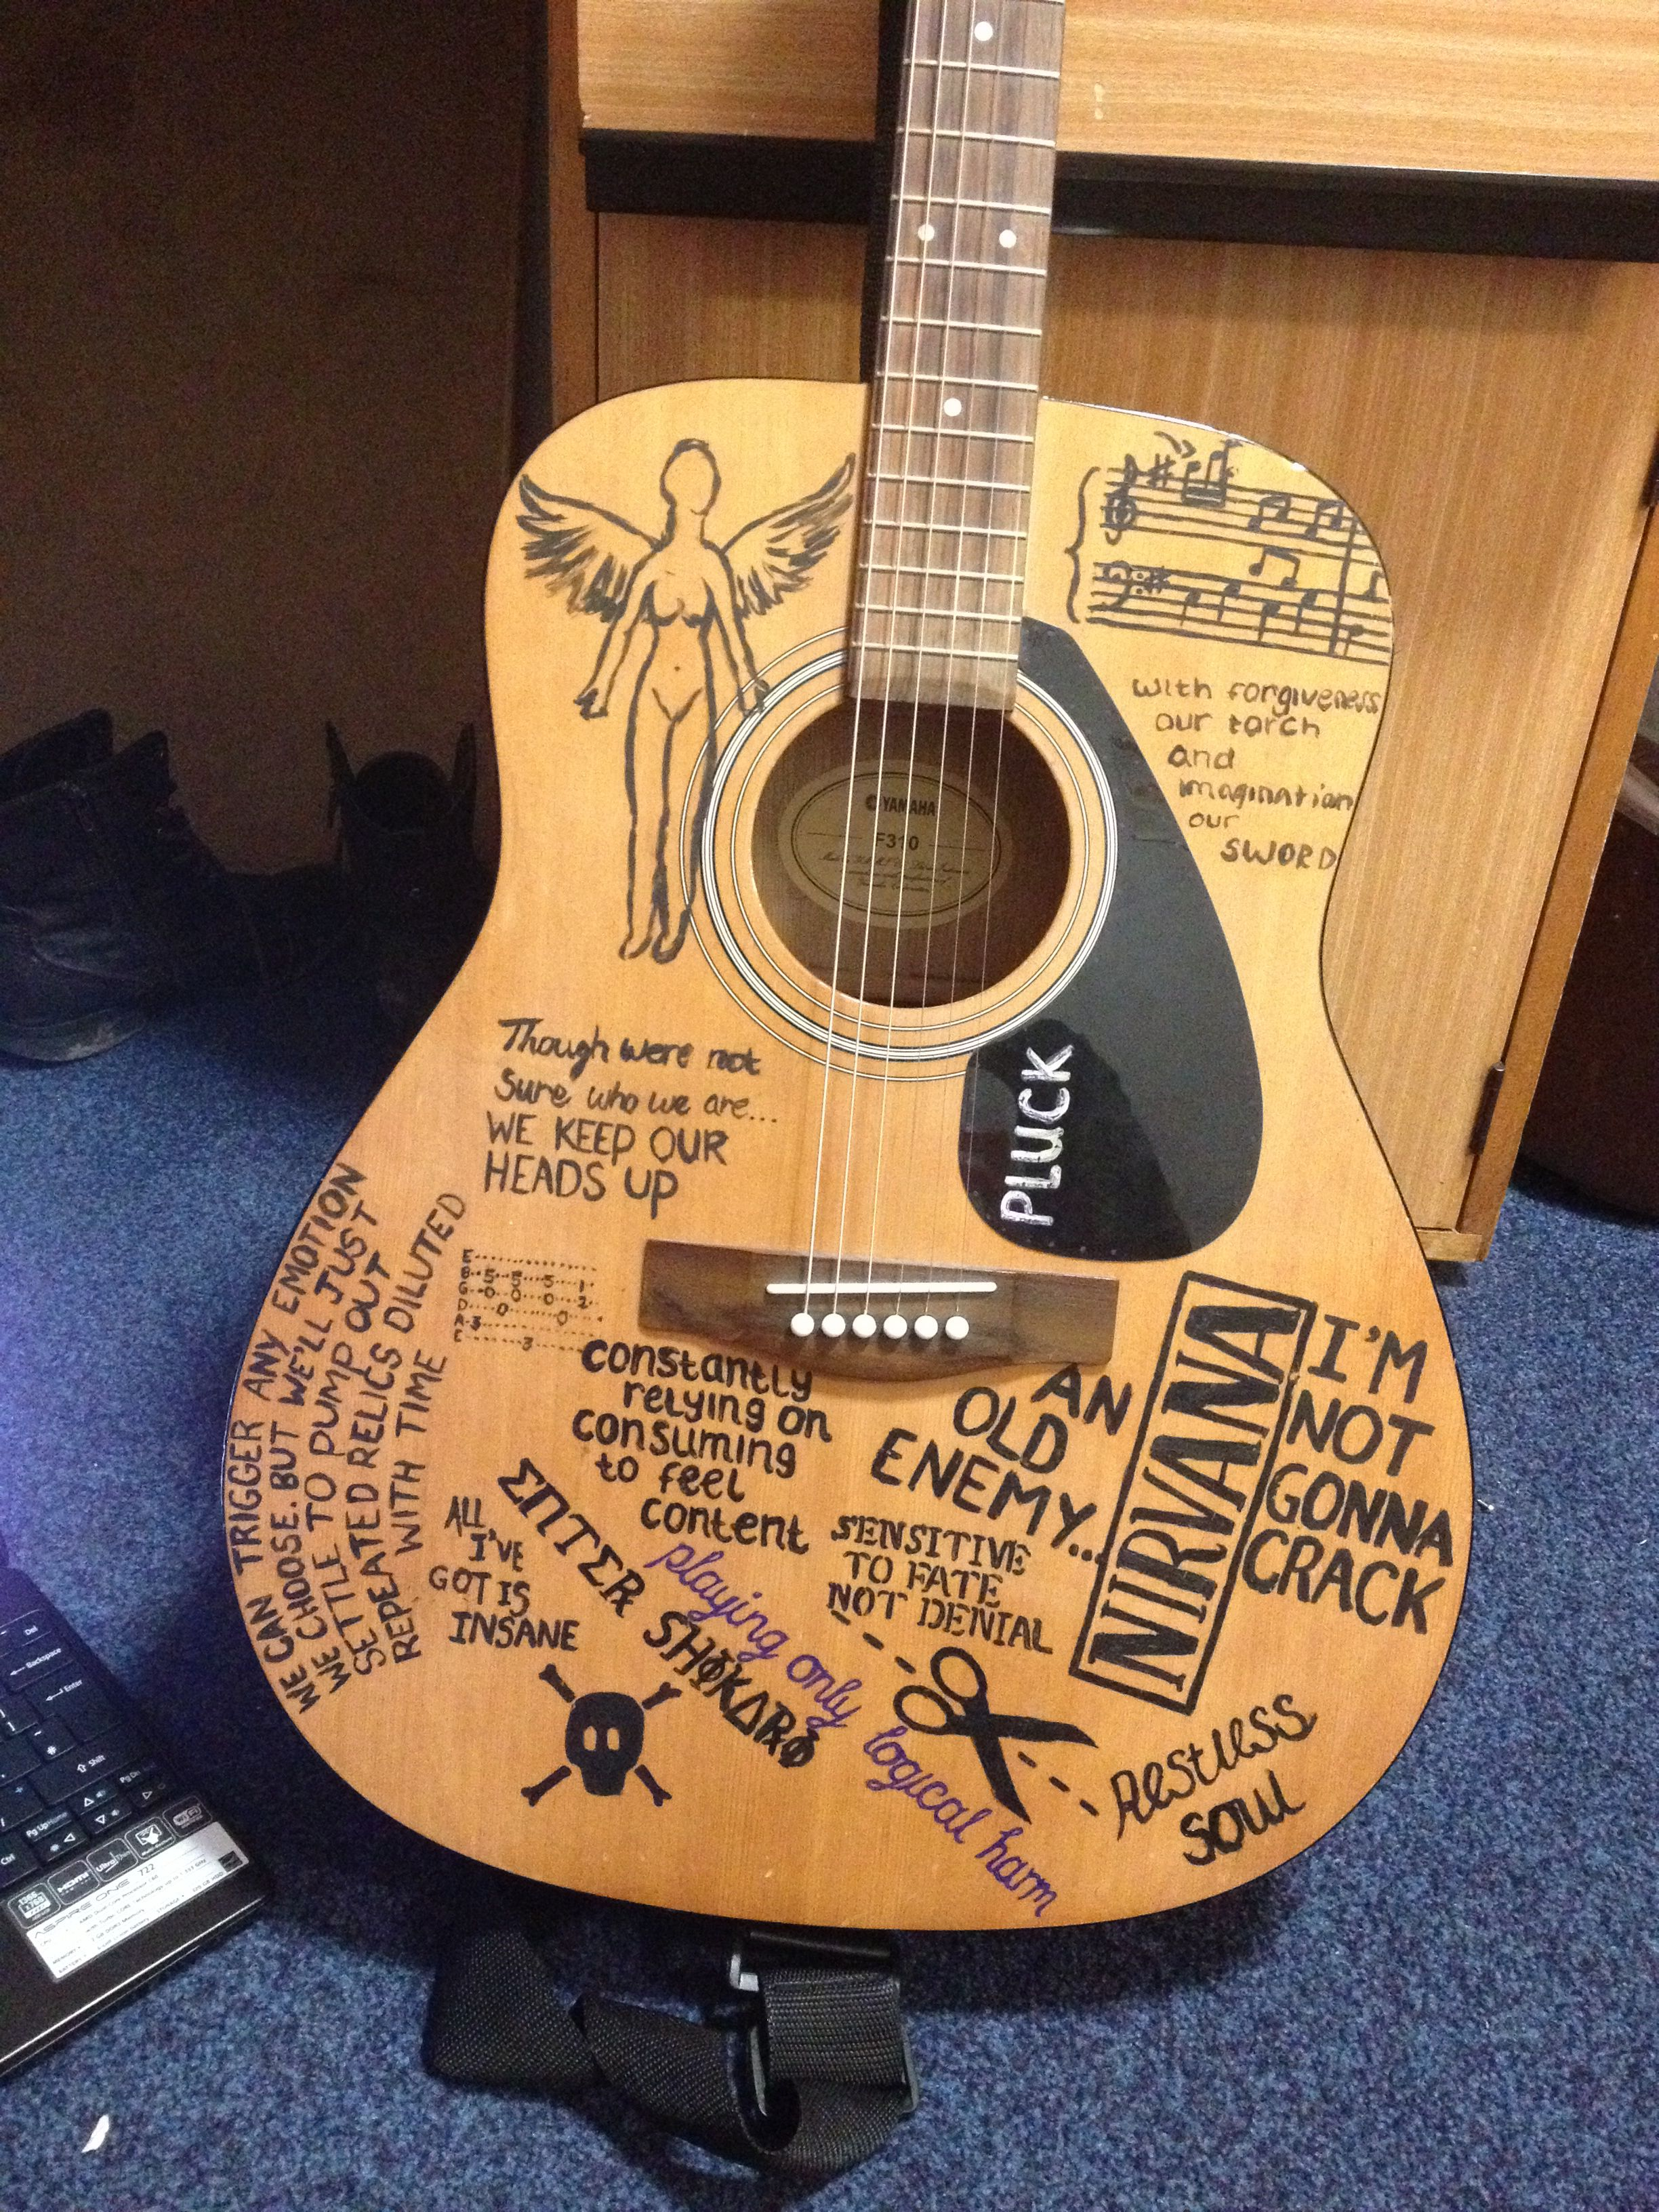 My guitar art nirvana lyrics nirvana pinterest lyrics and beautiful - Nirvana dive lyrics ...